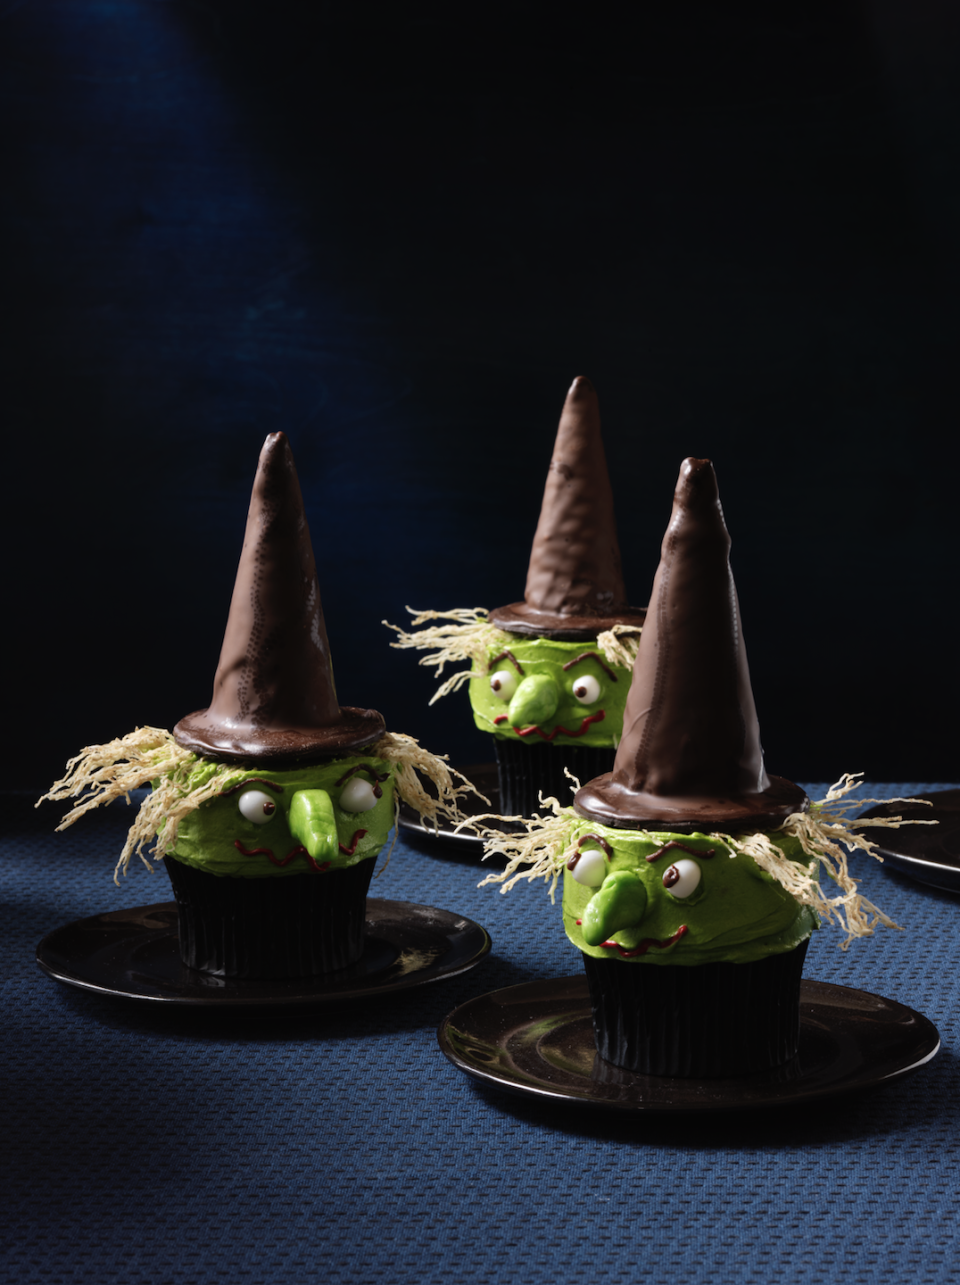 """<p>Put a spell on your guests with these bewitching treats, which elevate homemade vanilla cupcakes with a combo of chocolaty store-bought goods, frosting and candy.</p><p><em><a href=""""https://www.womansday.com/food-recipes/food-drinks/recipes/a11951/witch-cupcakes-recipe-123434/"""" rel=""""nofollow noopener"""" target=""""_blank"""" data-ylk=""""slk:Get the recipe from Woman's Day »"""" class=""""link rapid-noclick-resp"""">Get the recipe from Woman's Day »</a></em></p>"""